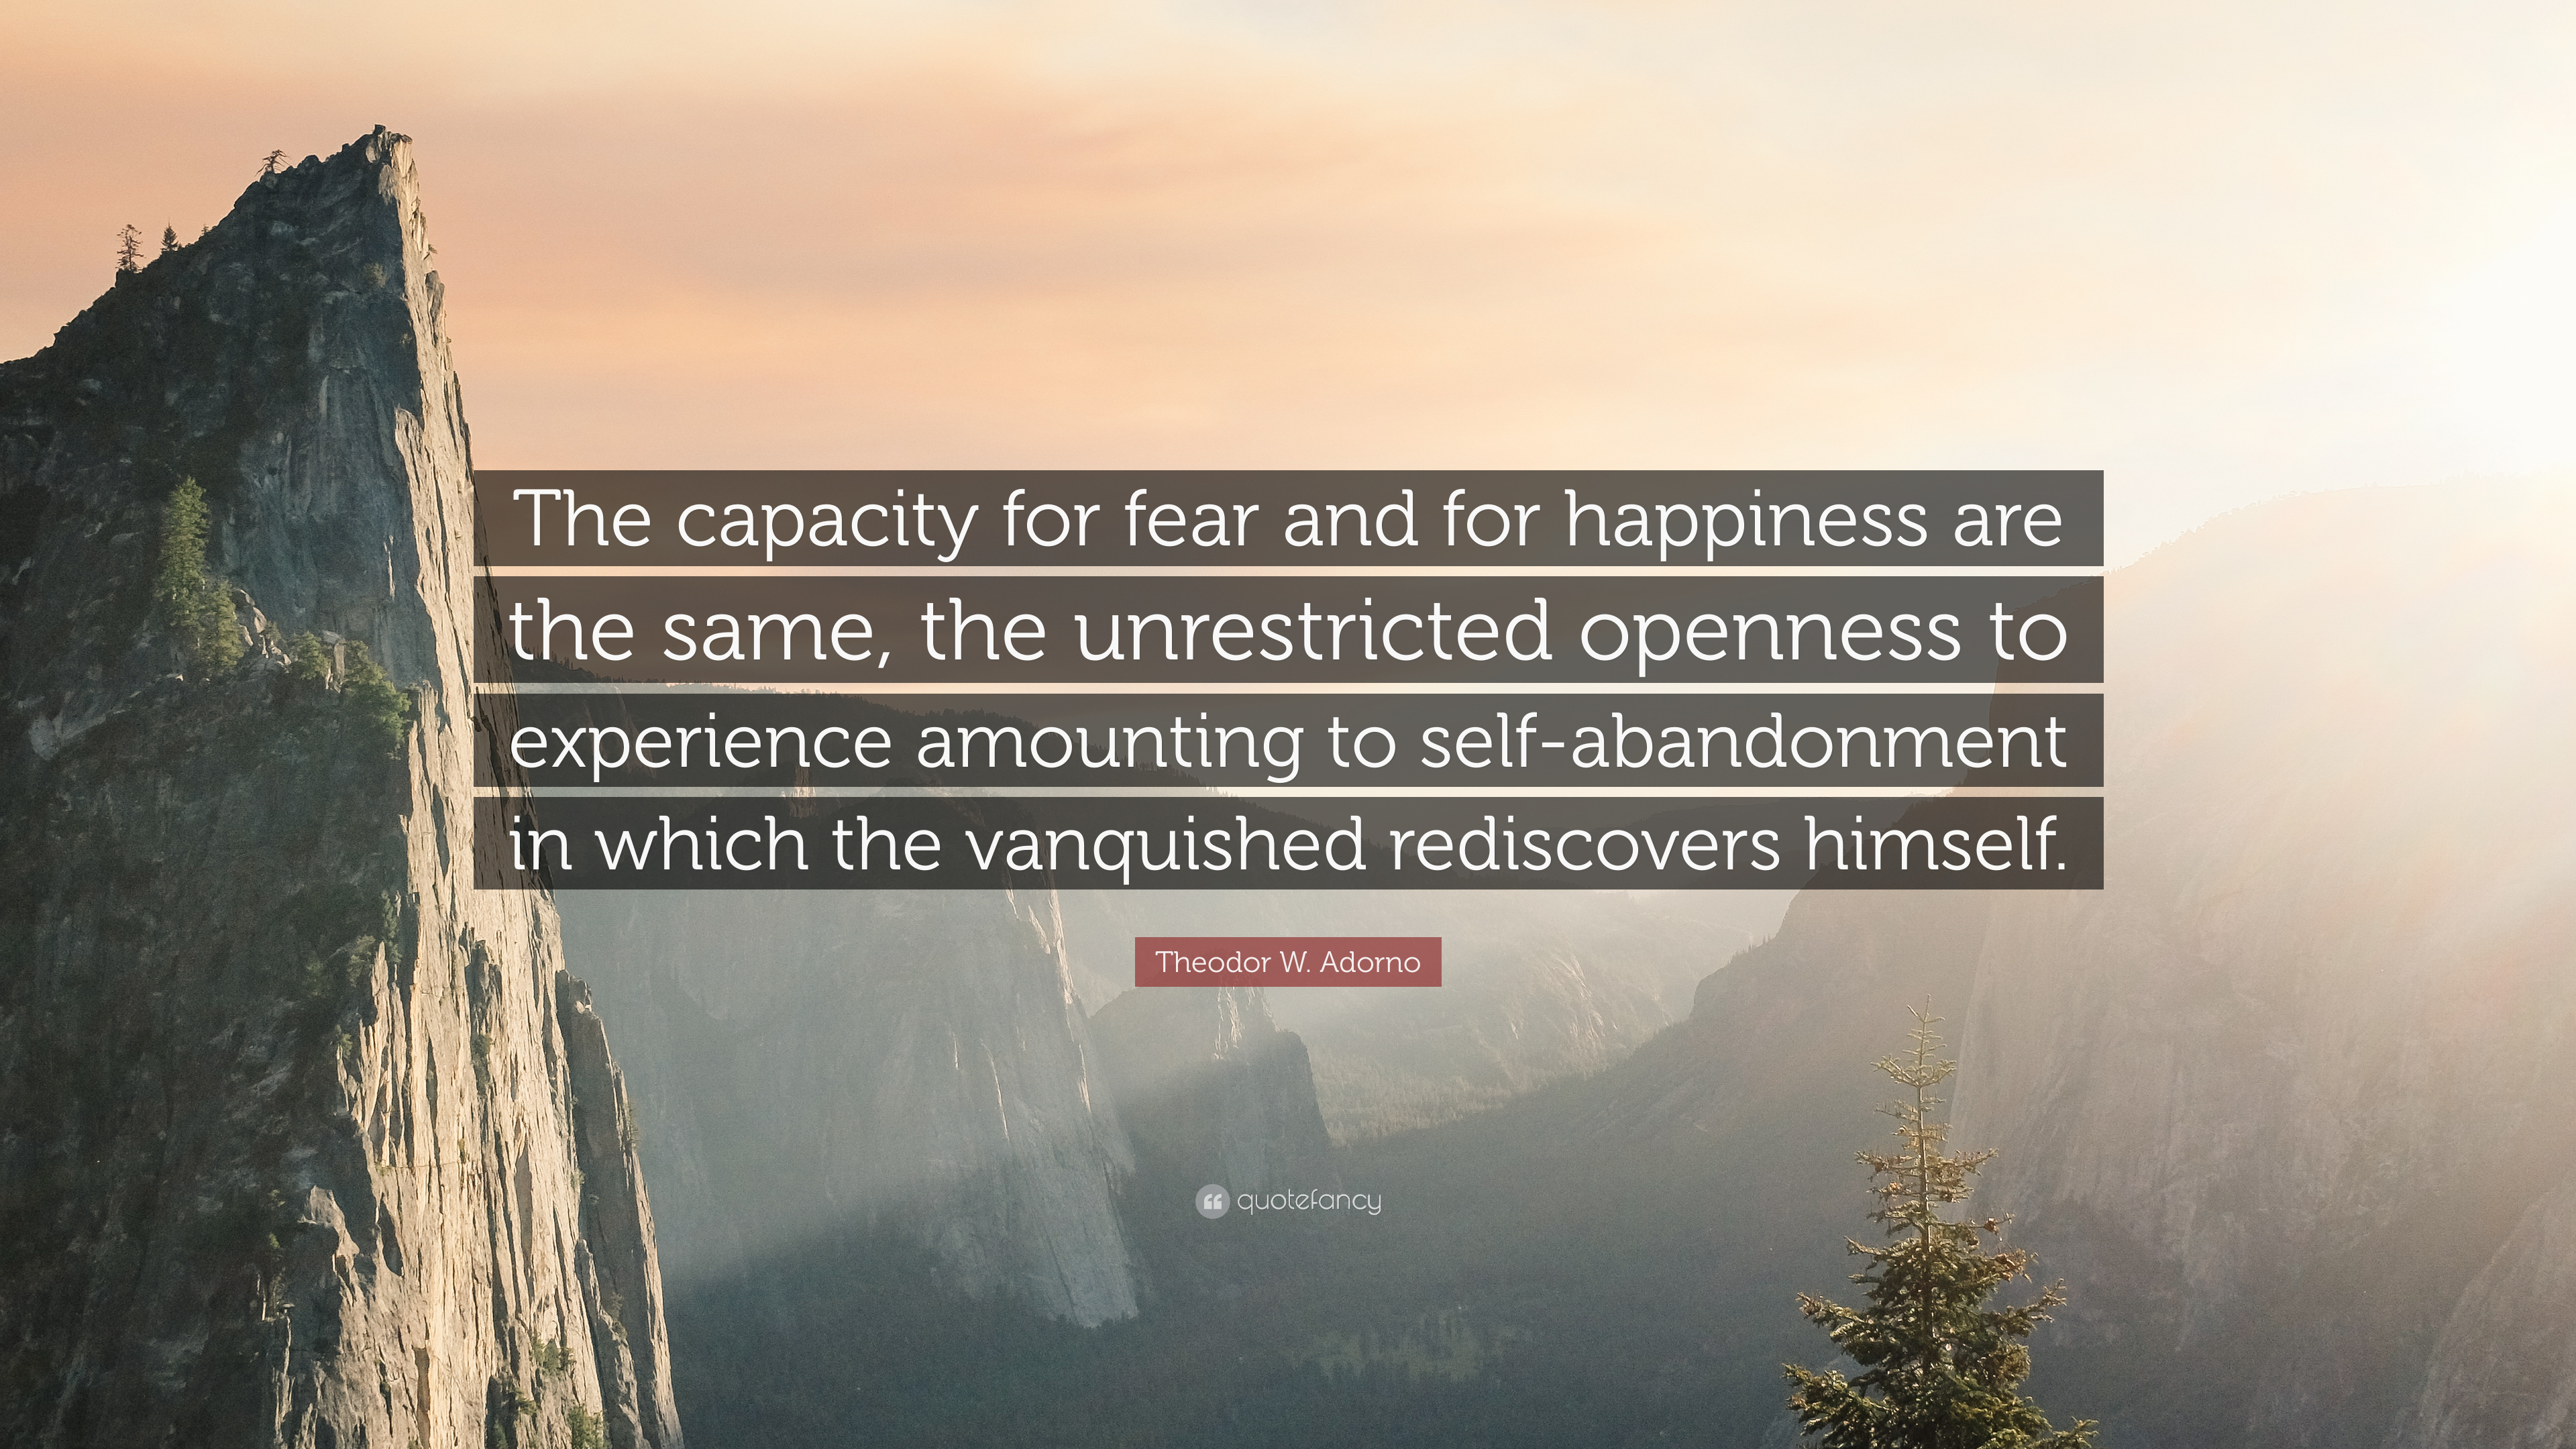 Theodor W Adorno Quote The Capacity For Fear And For Happiness Are The Same The Unrestricted Openness To Experience Amounting To Self Abandonm 7 Wallpapers Quotefancy